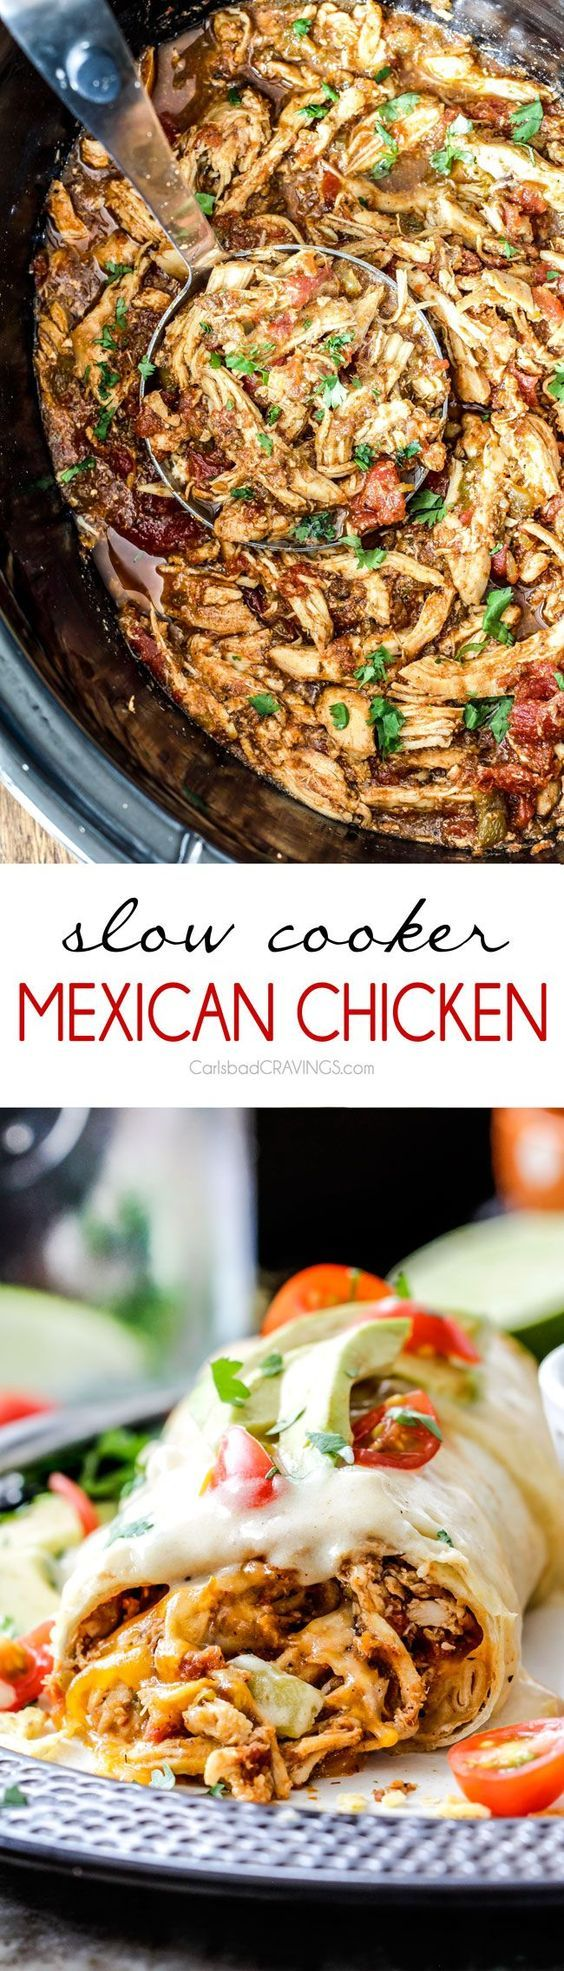 Easy Slow Cooker Shredded Mexican Chicken simmered with Mexican spices, salsa and green chilies for the BEST Mexican chicken perfect for tacos, burritos, tostadas, salads, etc. Couldn't be any easier! #mexicanrecipeswithchicken